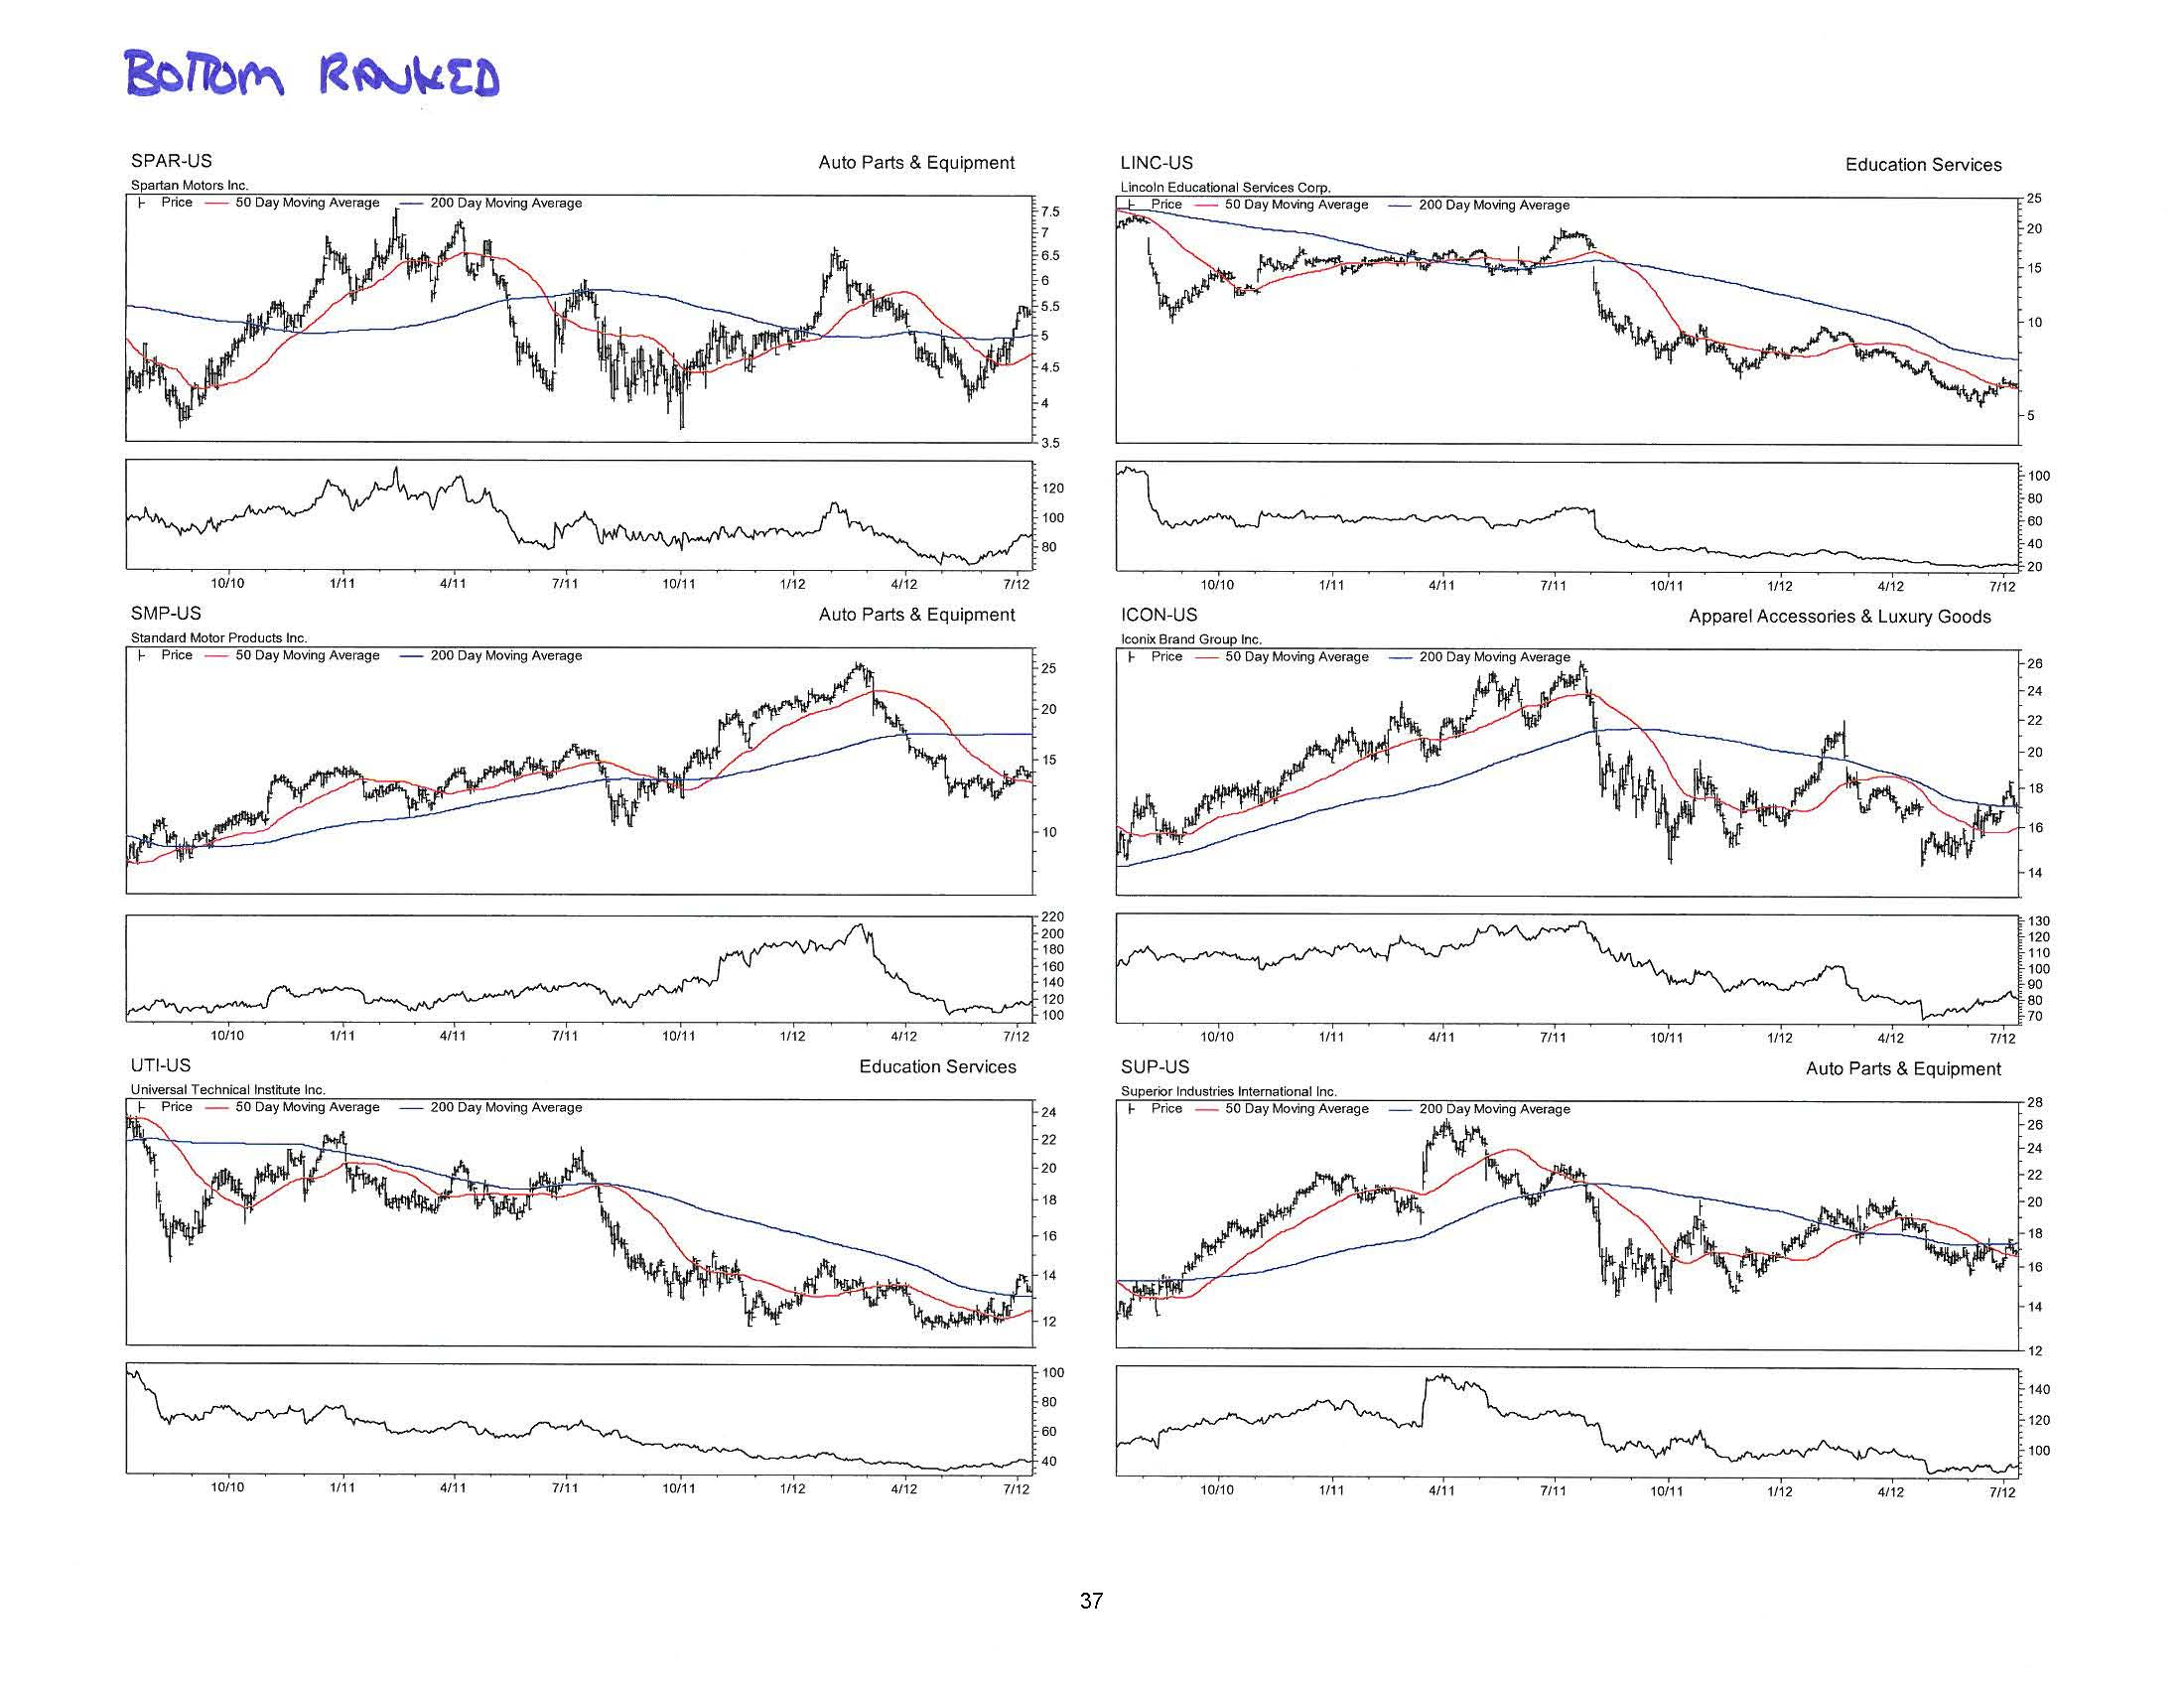 Consumer Discretionary Deep-Dive 07.12.12_Page_37